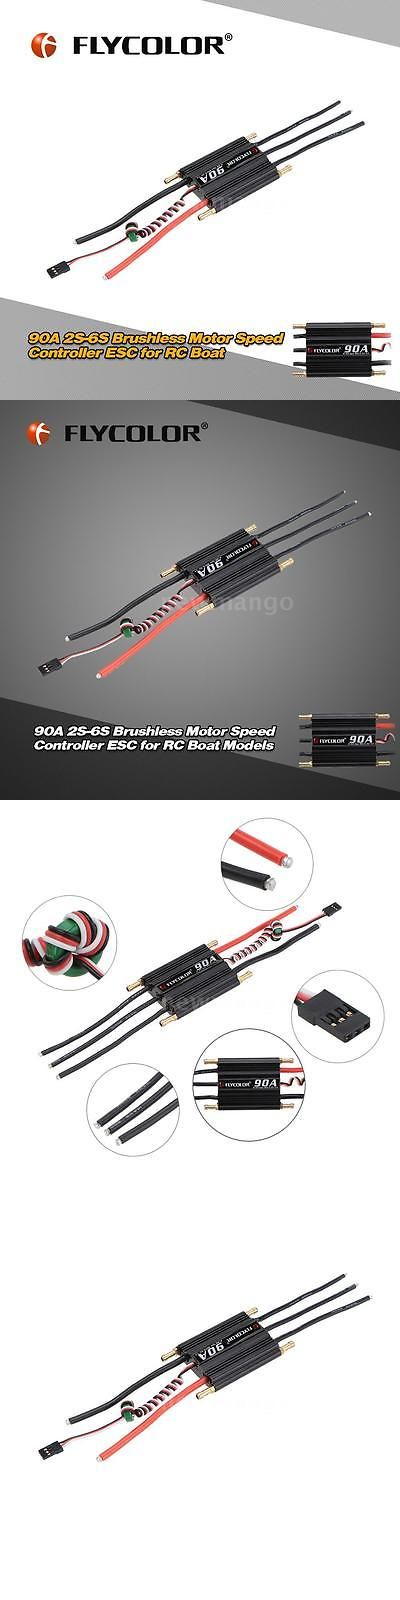 Boats and Watercraft 34058: Flycolor 90A 2S-6S Electronic Speed Controller Esc With 5.5V 5A Switch Bec Q1y1 -> BUY IT NOW ONLY: $31.04 on eBay!